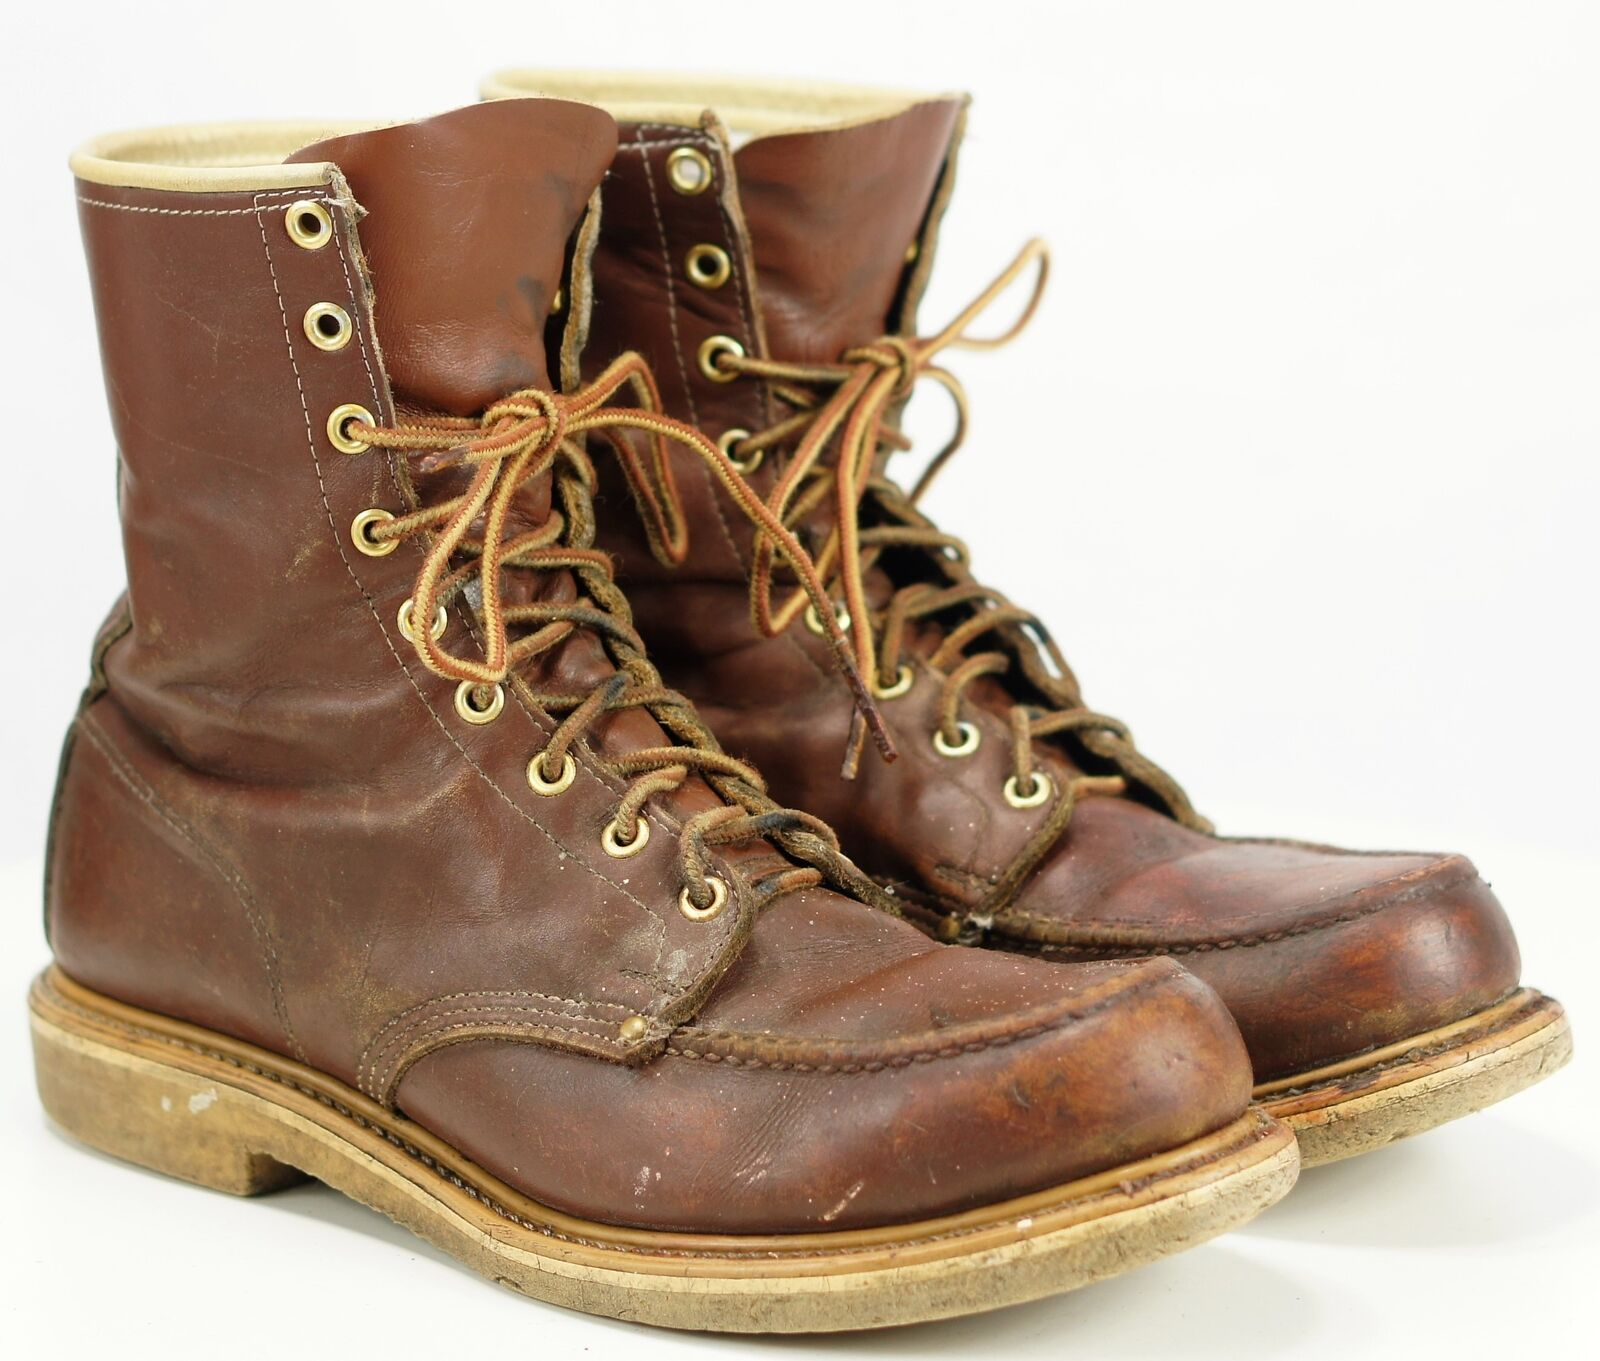 Vintage HyTest Men's Steel Moc Toe Lace Work Sport Boots US Union Made 8.5 C